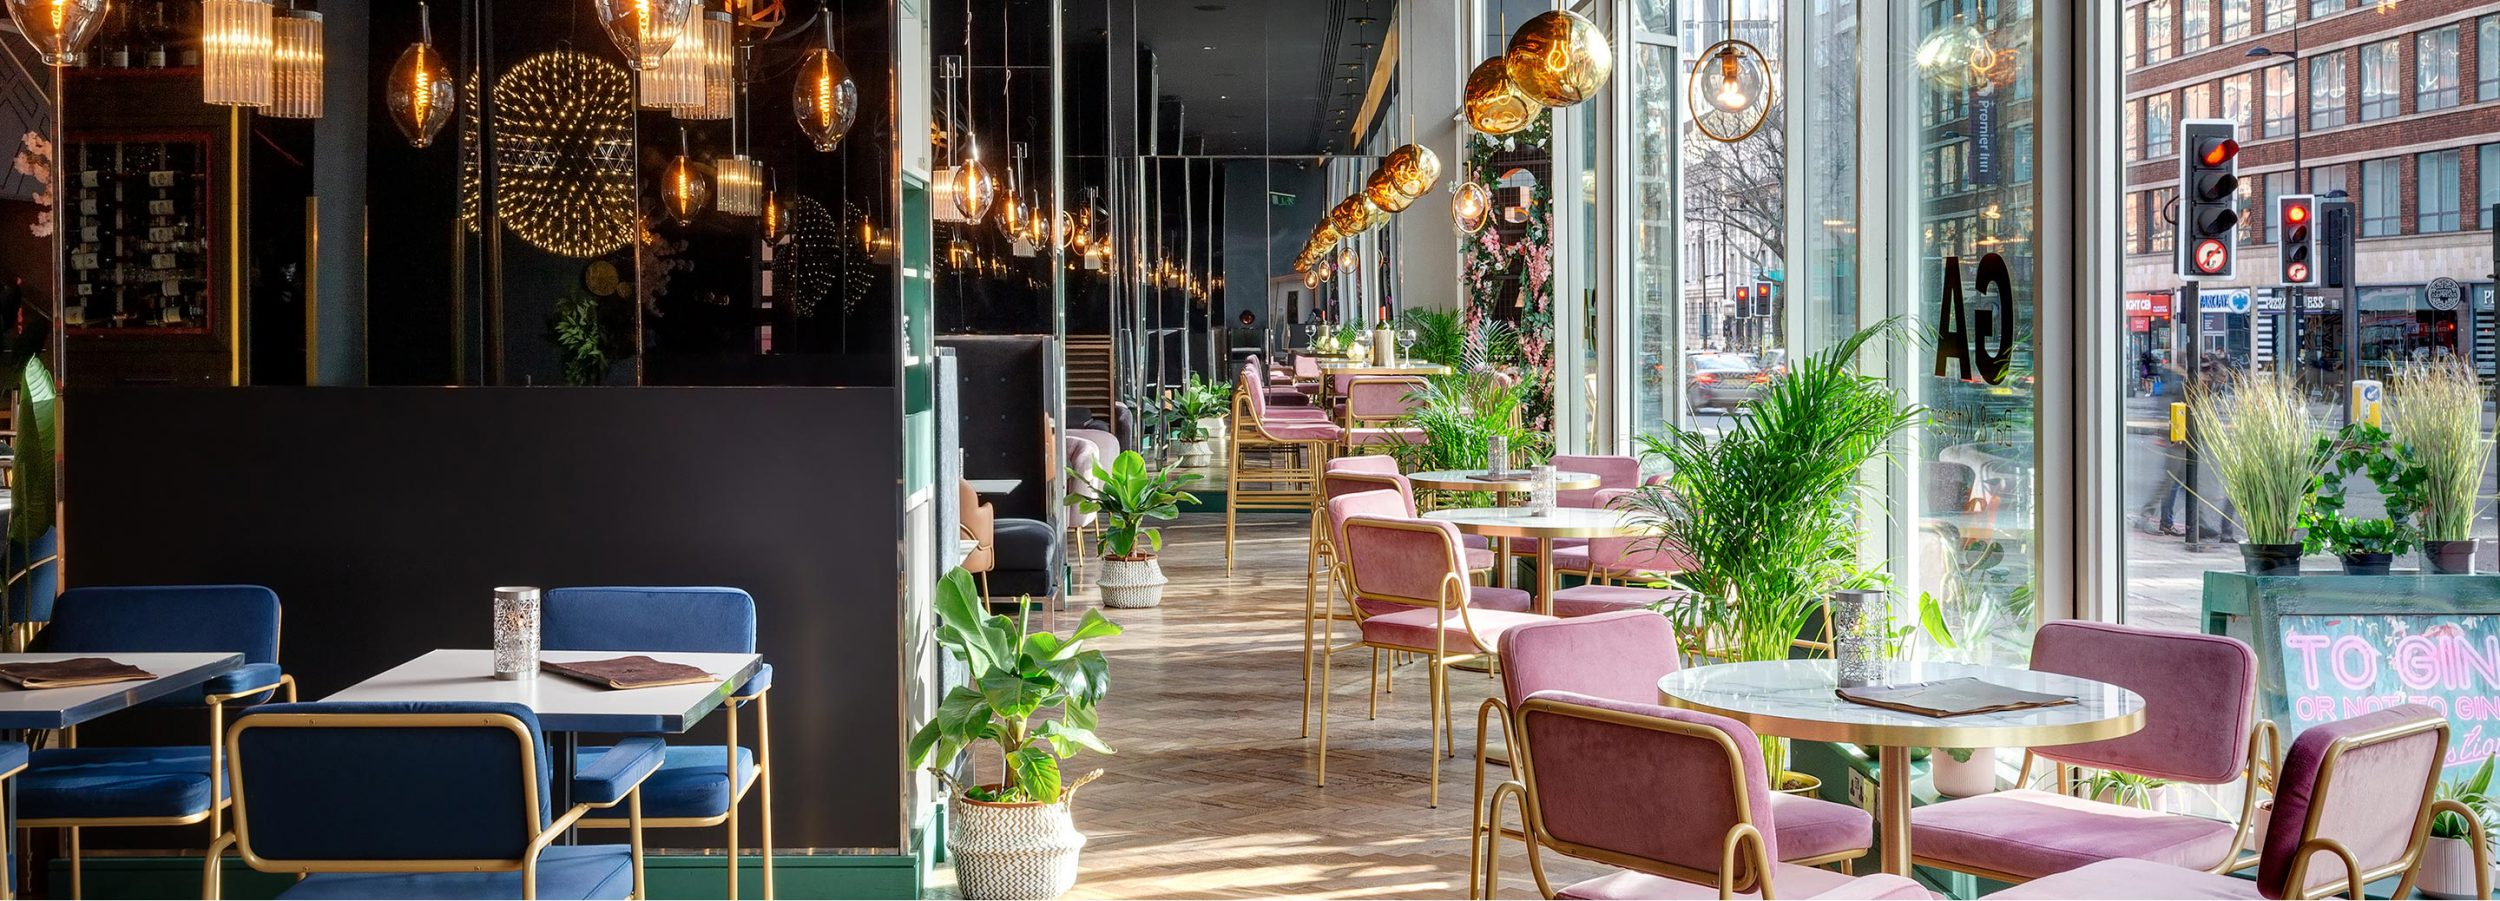 Panoramic view of restaurant on London streets